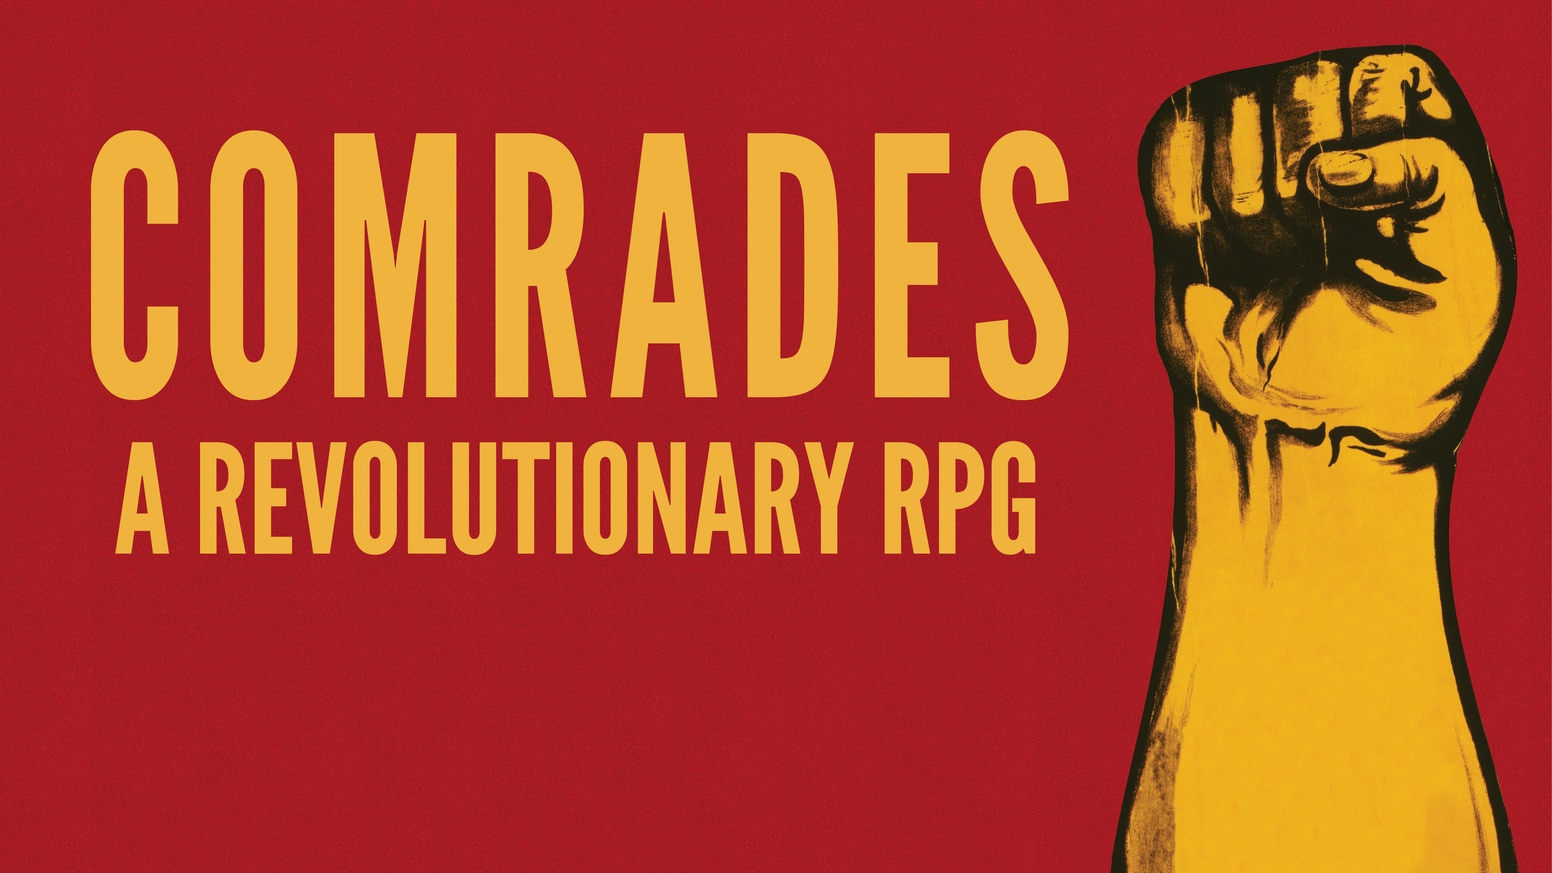 A tabletop roleplaying game about life in the revolutionary underground, where a roll of the dice can change the world.